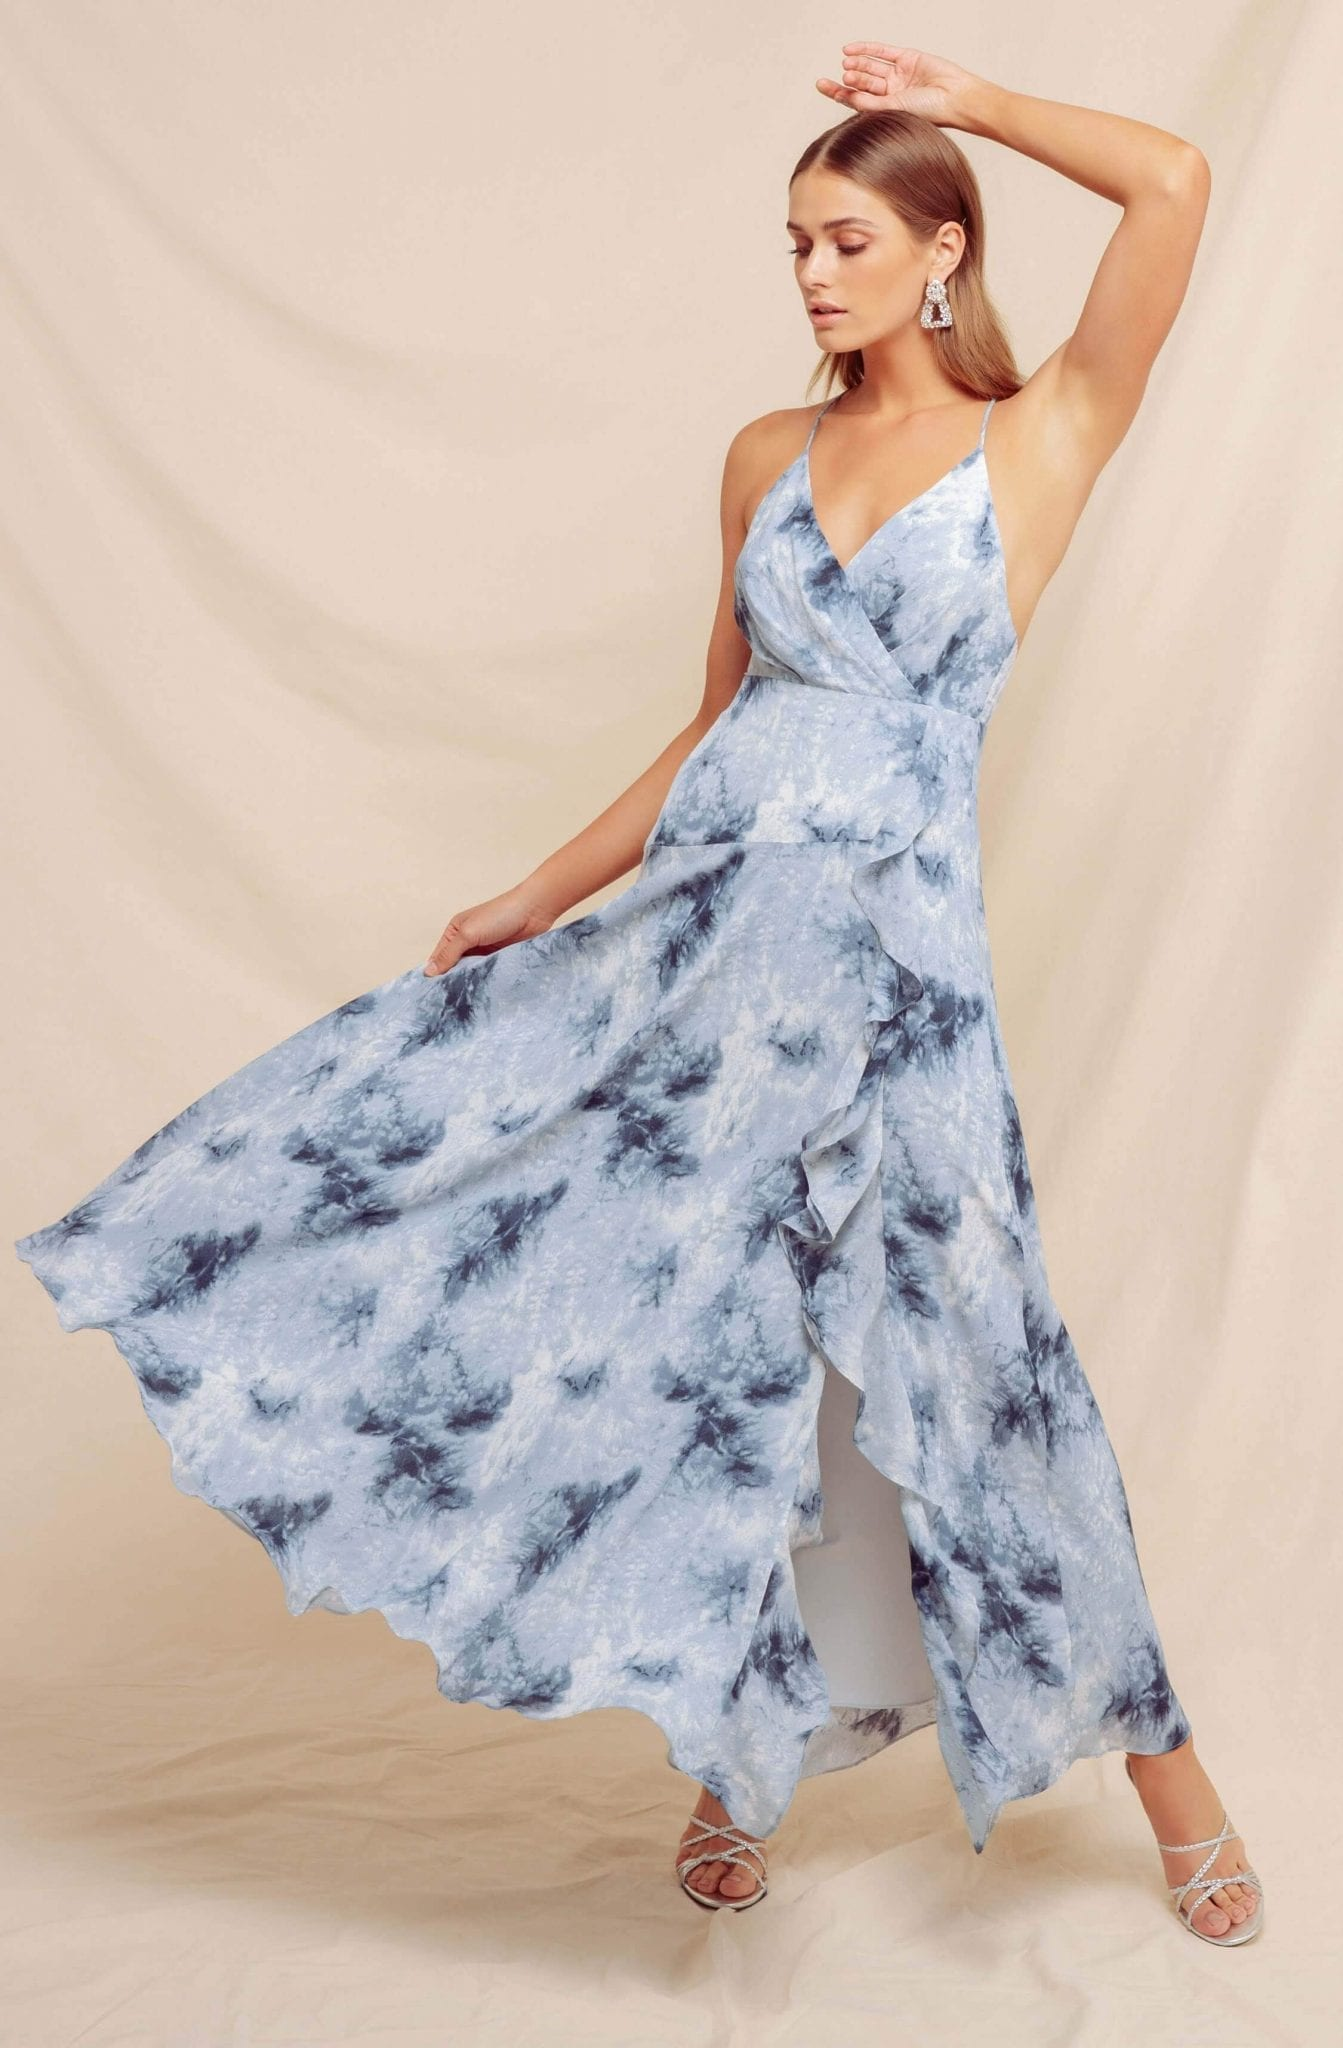 ASTRTHELABEL Holland Ruffle Tie Dye Maxi Dress